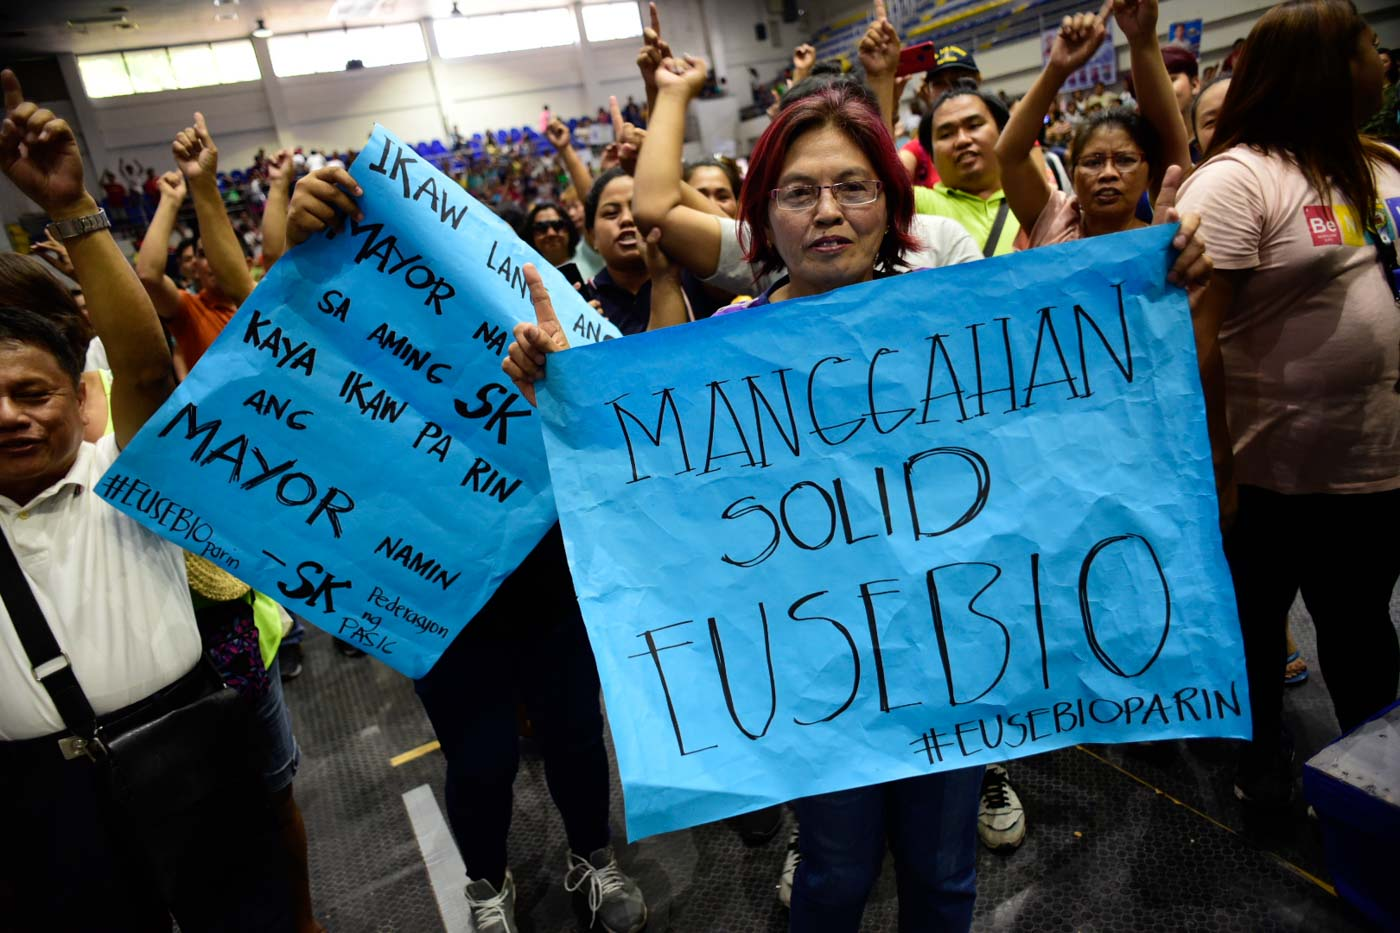 SOLID EUSEBIO. Supporters of Mayor Bobby Eusebio protesting inside Pasig Sports Center which started while proclamation is ongoing. Photo by Rob Reyes/Rappler